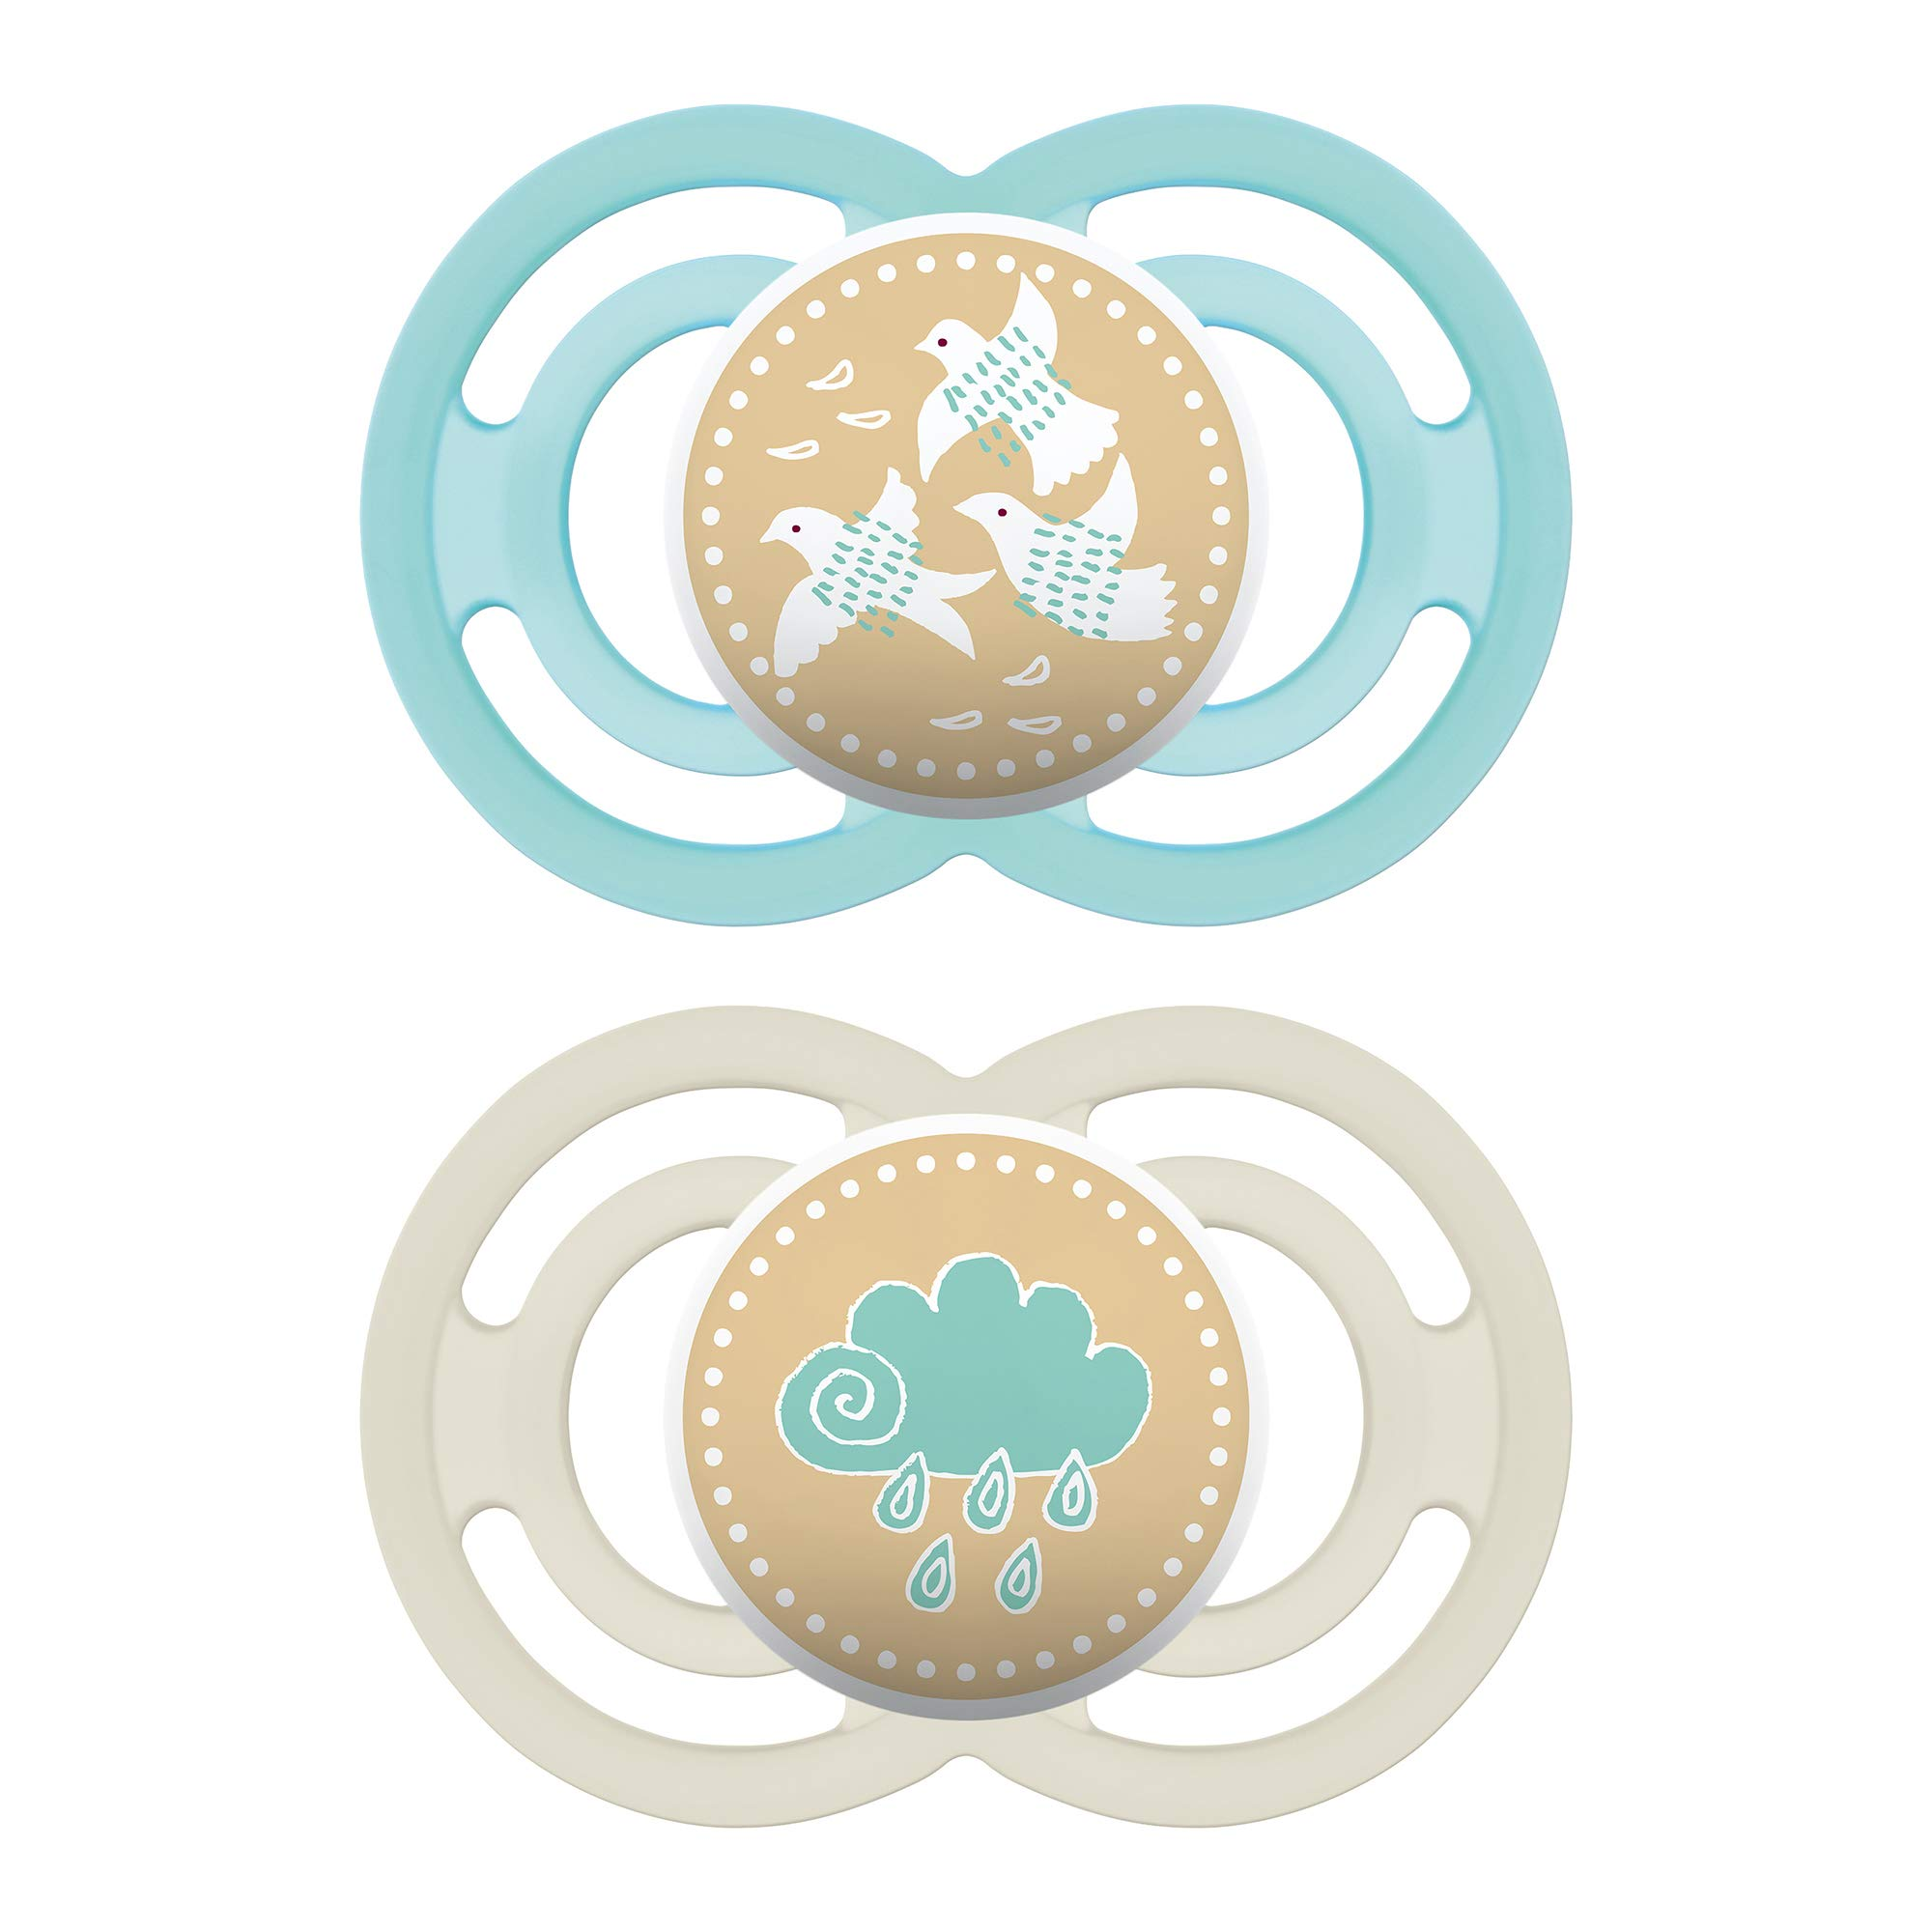 MAM Perfect Pacifiers, Orthodontic Pacifiers (2 pack) MAM Pacifiers 6-Plus Months, Best Pacifier for Breastfed Babies, Unisex Baby Pacifier